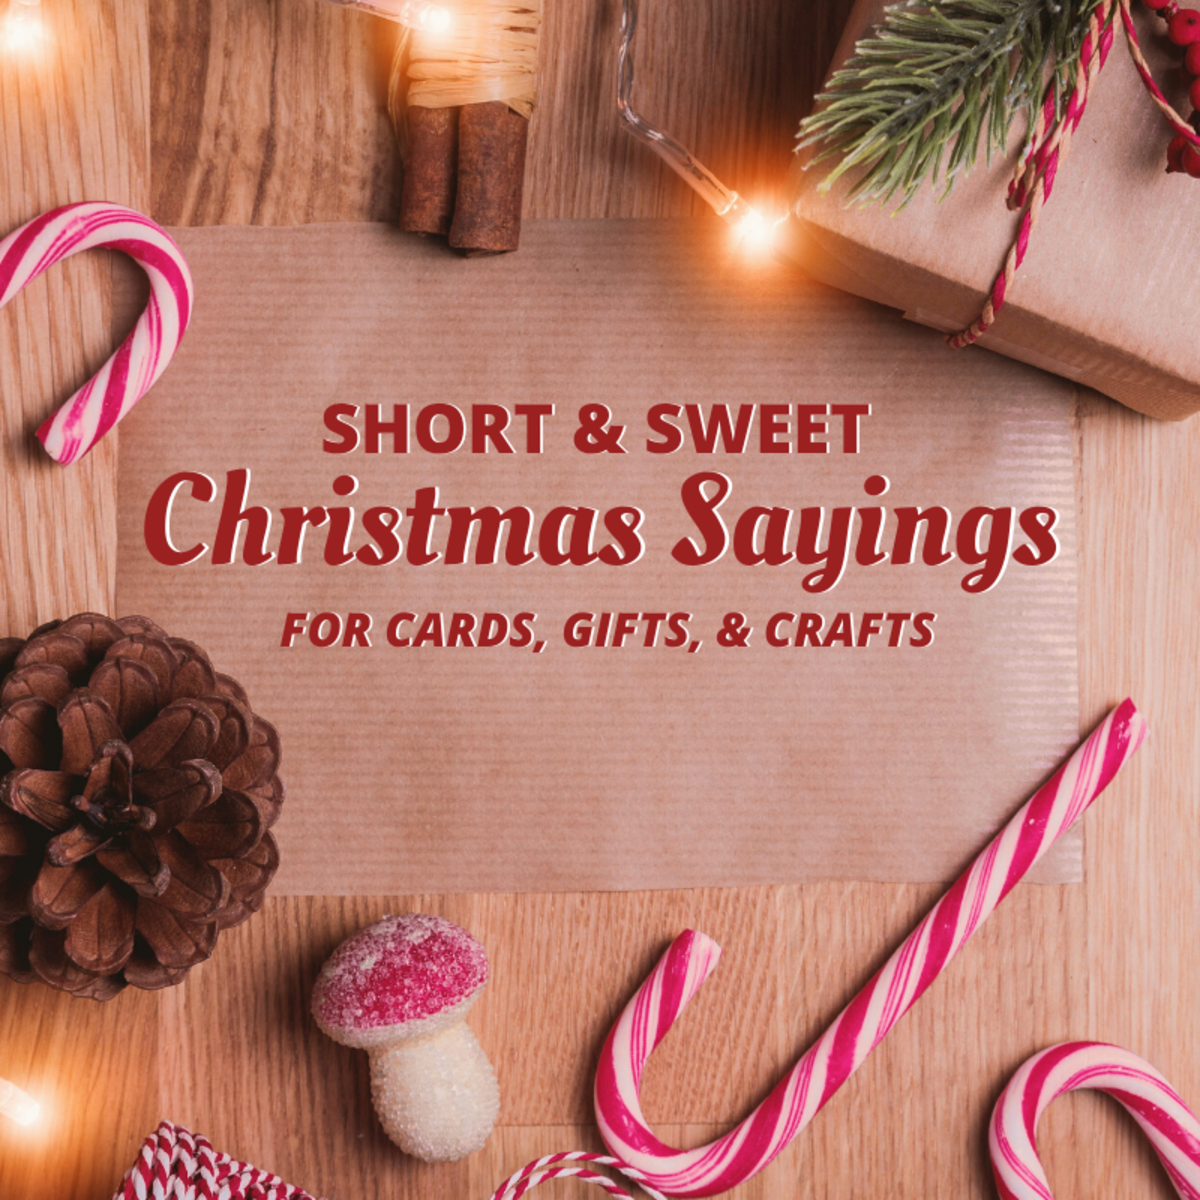 Short, Funny, and Creative Sayings About Christmas